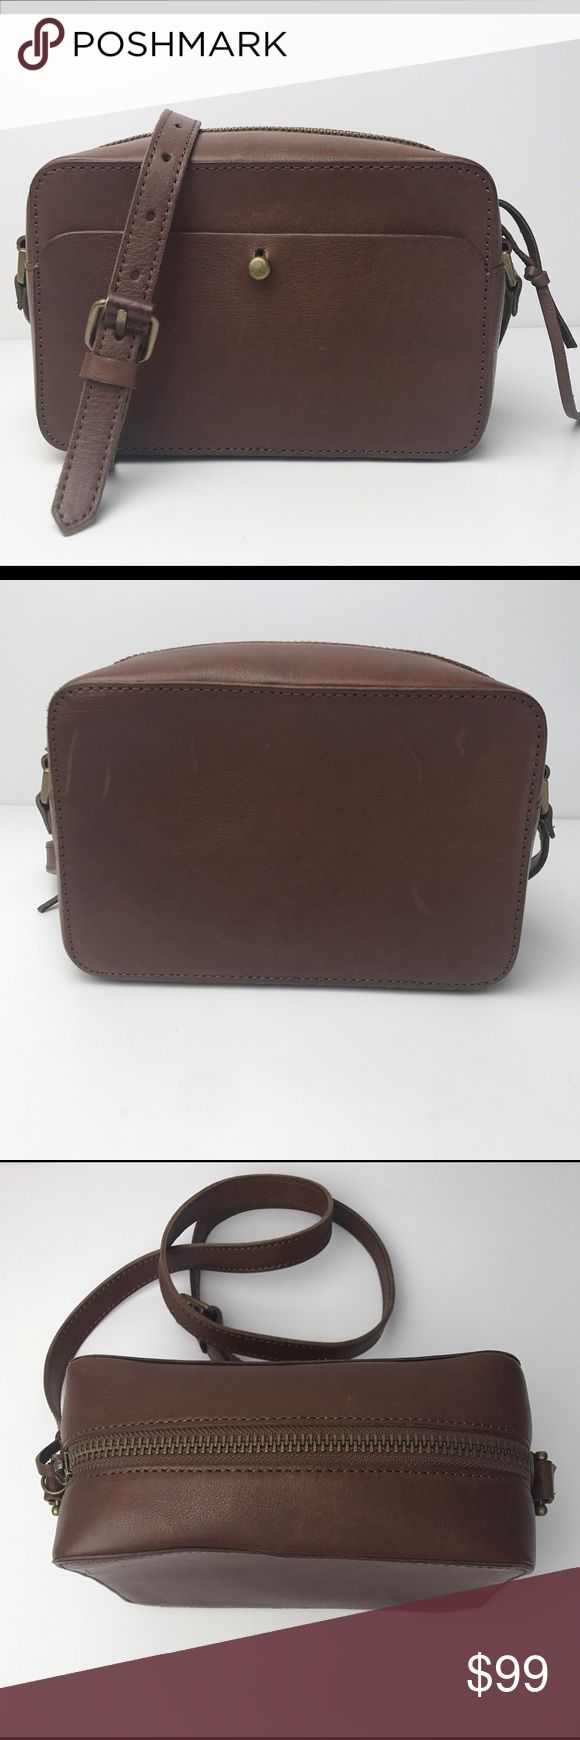 """*NEW!* Madewell Manchester Brown Leather Crossbody A take-everywhere crossbody that gives a nod to a classic '70s camera bag. Compact but surprisingly roomy, this is the cool girl's going-out pick.  Made of semi vegetable-tanned leather with a softly worn waxed finish that deepens into a distinctive patina. Please note: As it is made of a natural material, each bag varies slightly in texture and color. Zip closure. Interior pocket. 23 5/8"""" shoulder strap. 5 1/8""""H x 7 7/8""""W x 3 1/2""""D. *NO…"""